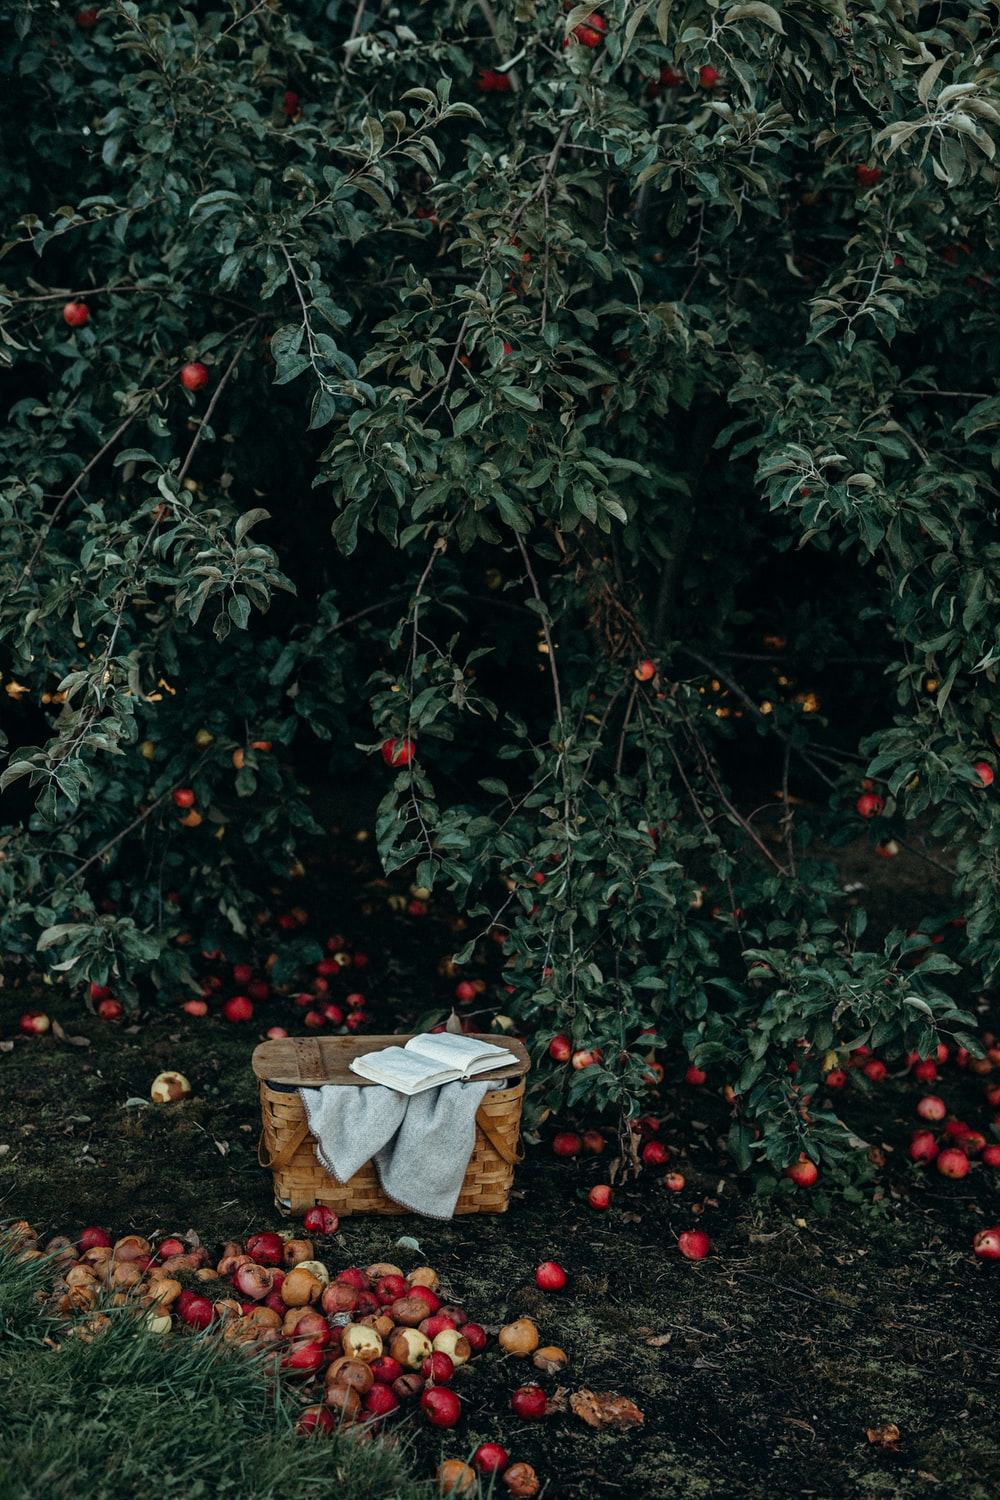 photo of basket near fruits and tree